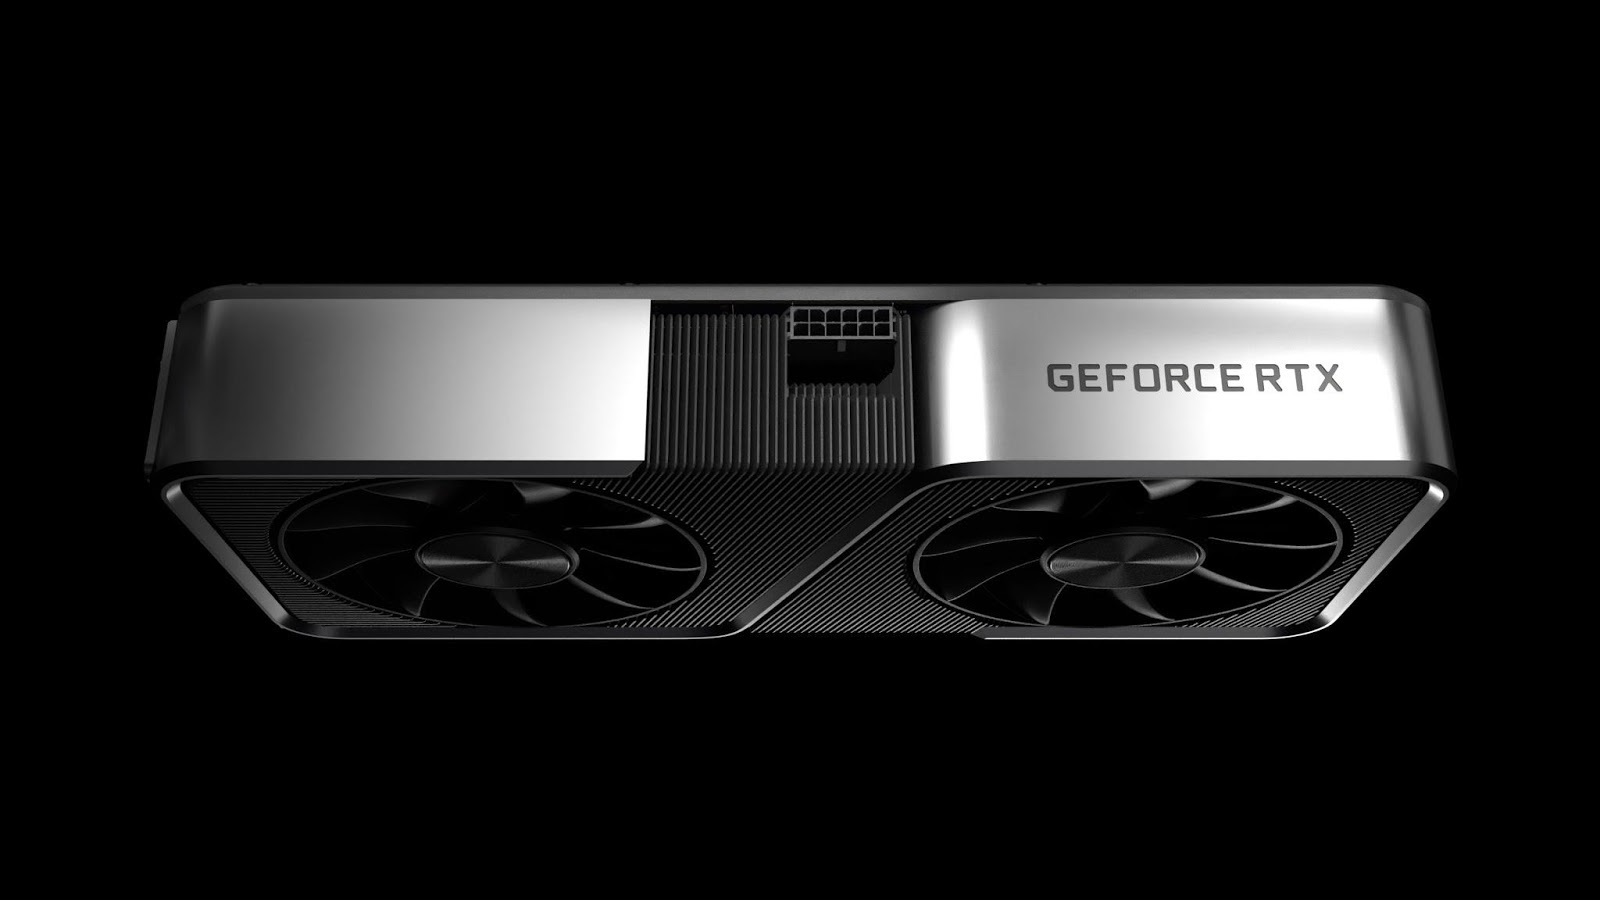 GeForce RTX Ampere